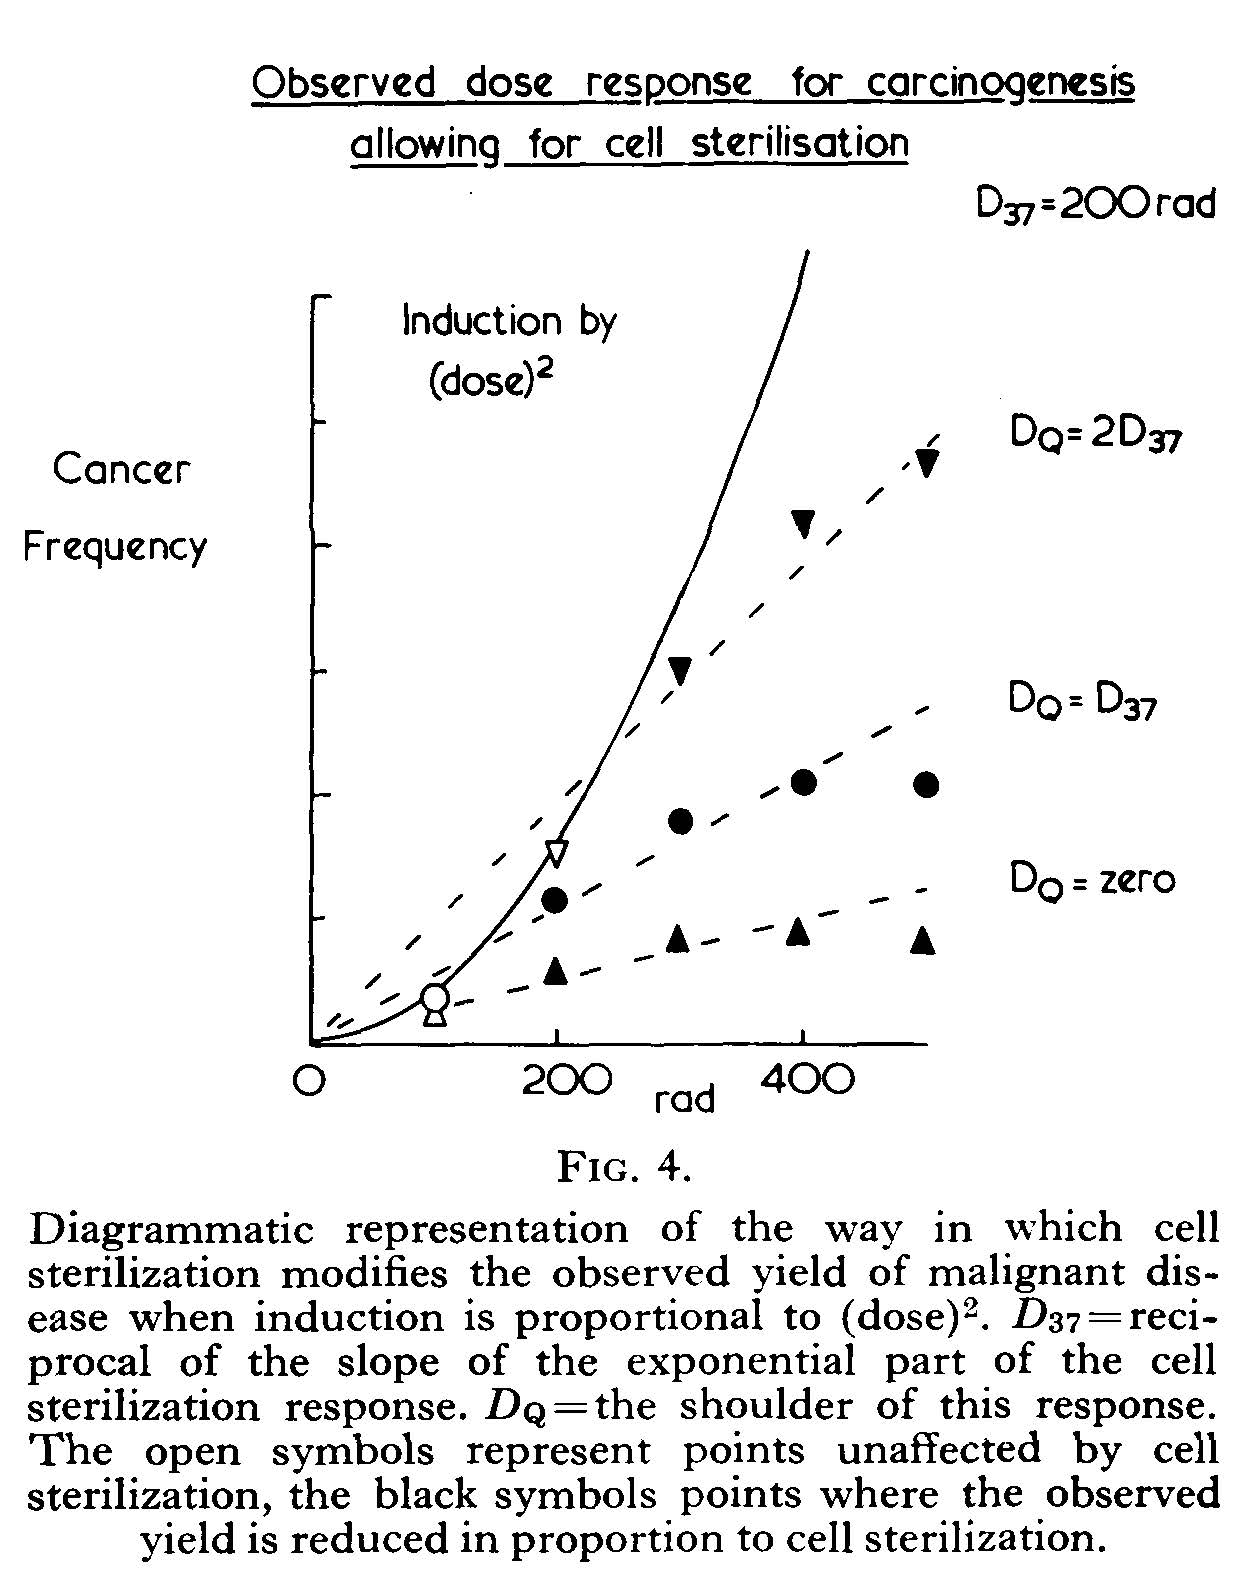 Ionsing radiation as a carcinogen